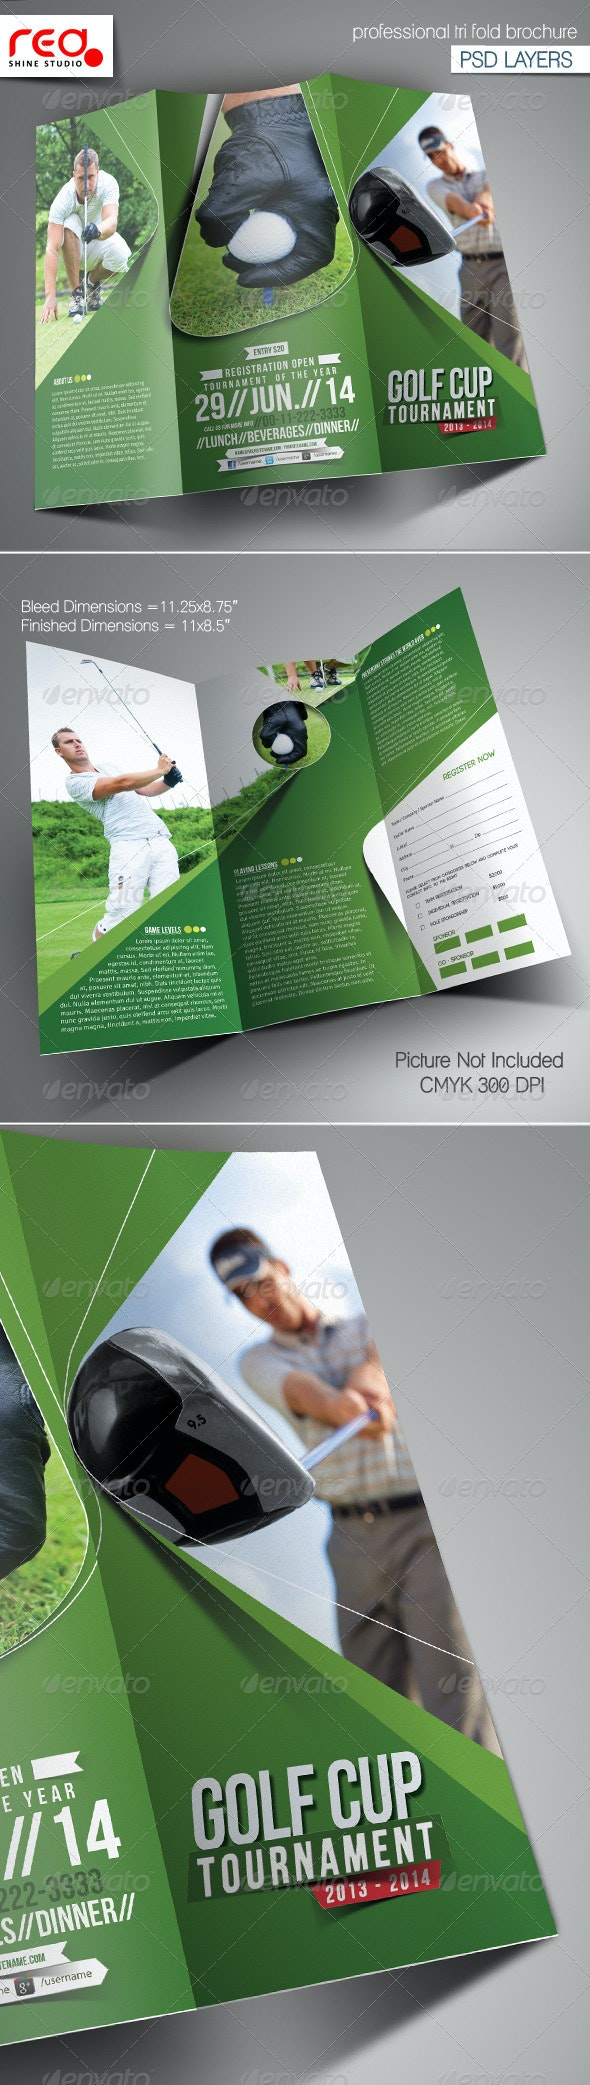 Golf Event Trifold Brochure Template - Corporate Brochures